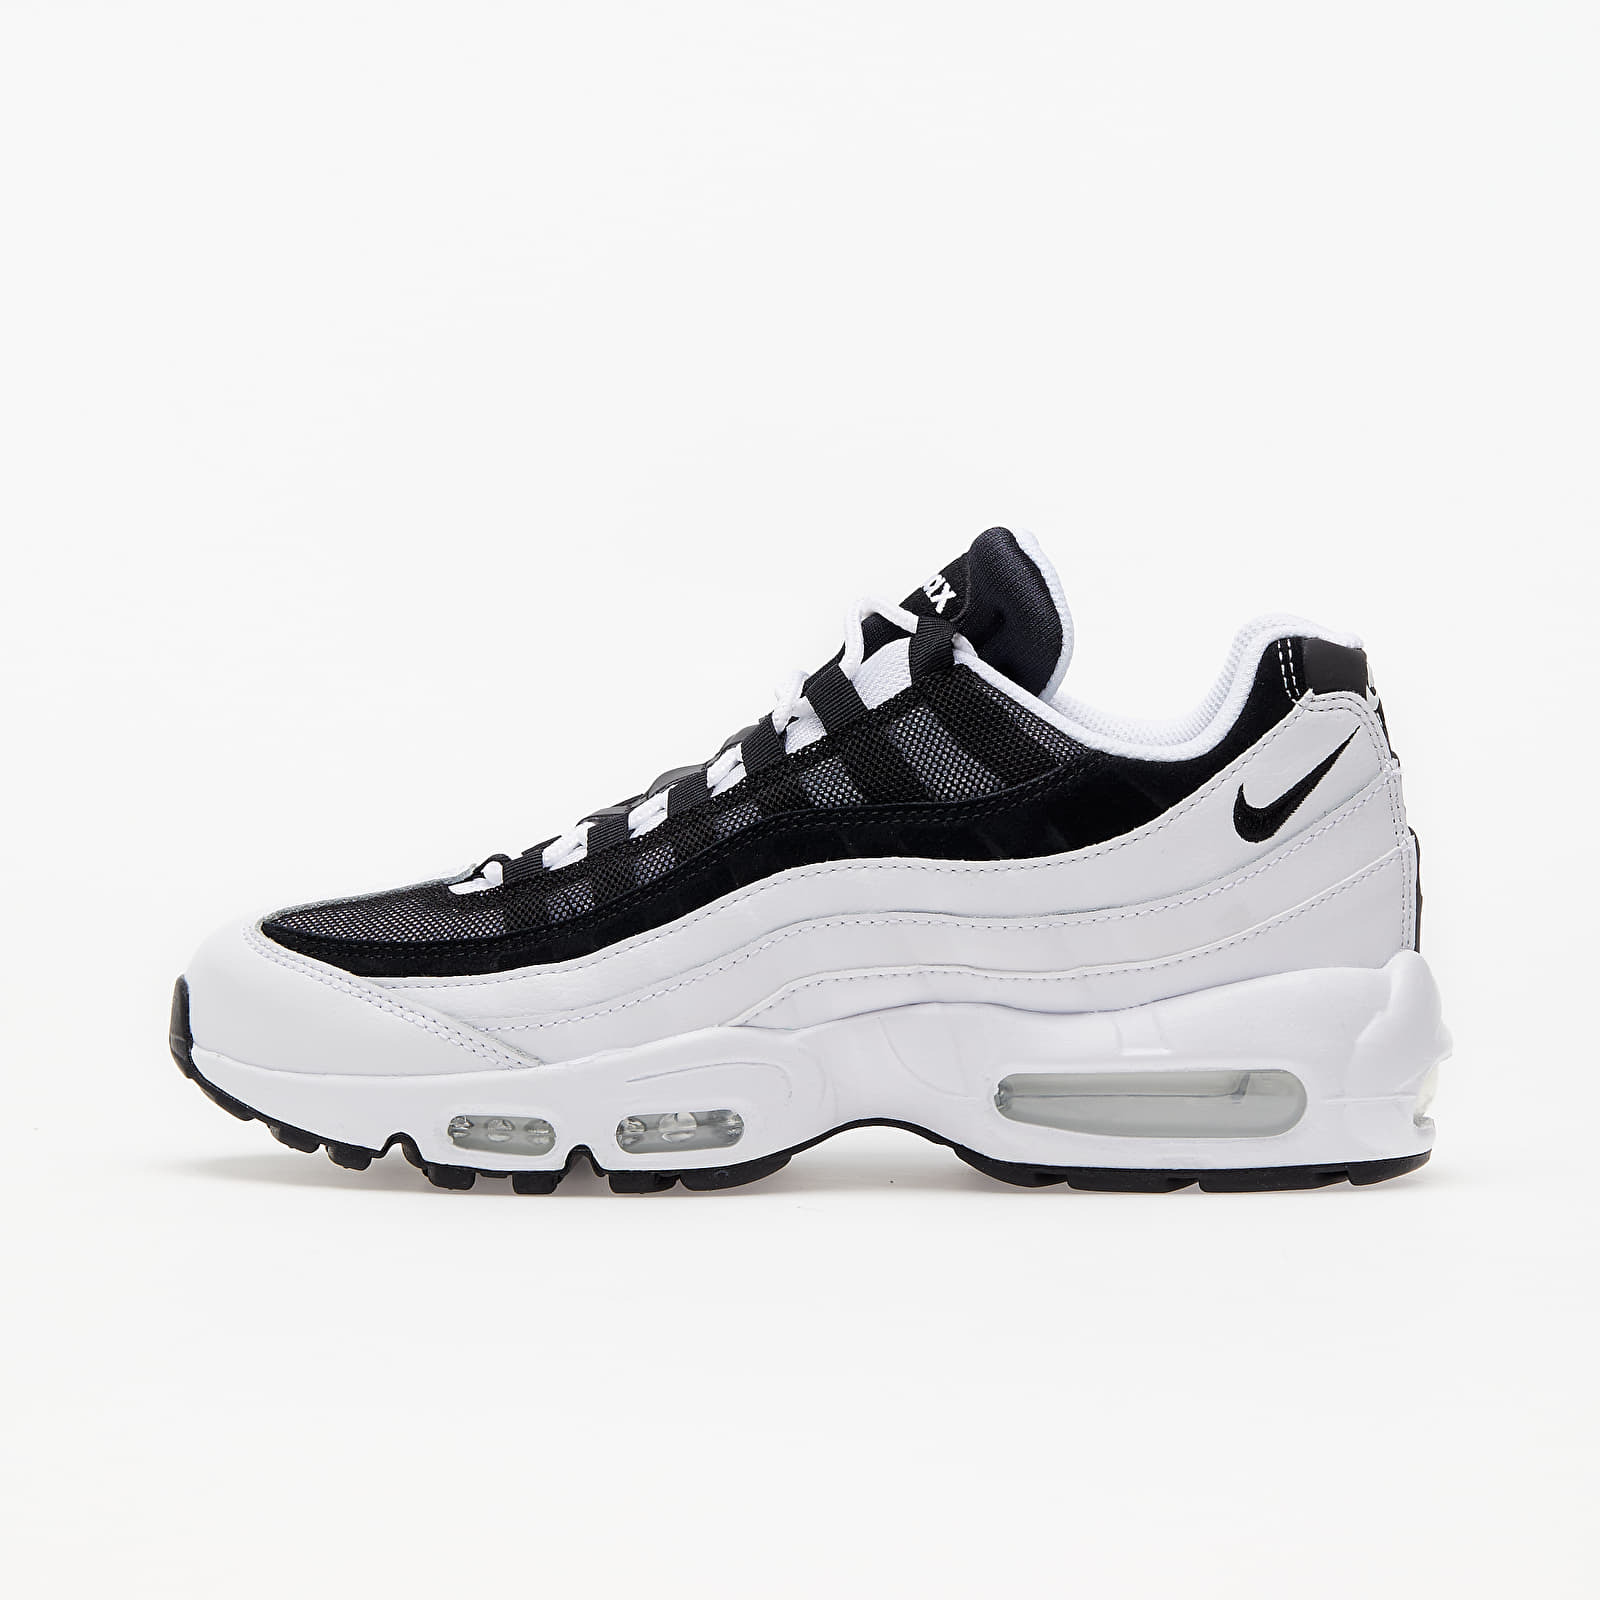 Nike Air Max 95 Essential White/ Black EUR 41